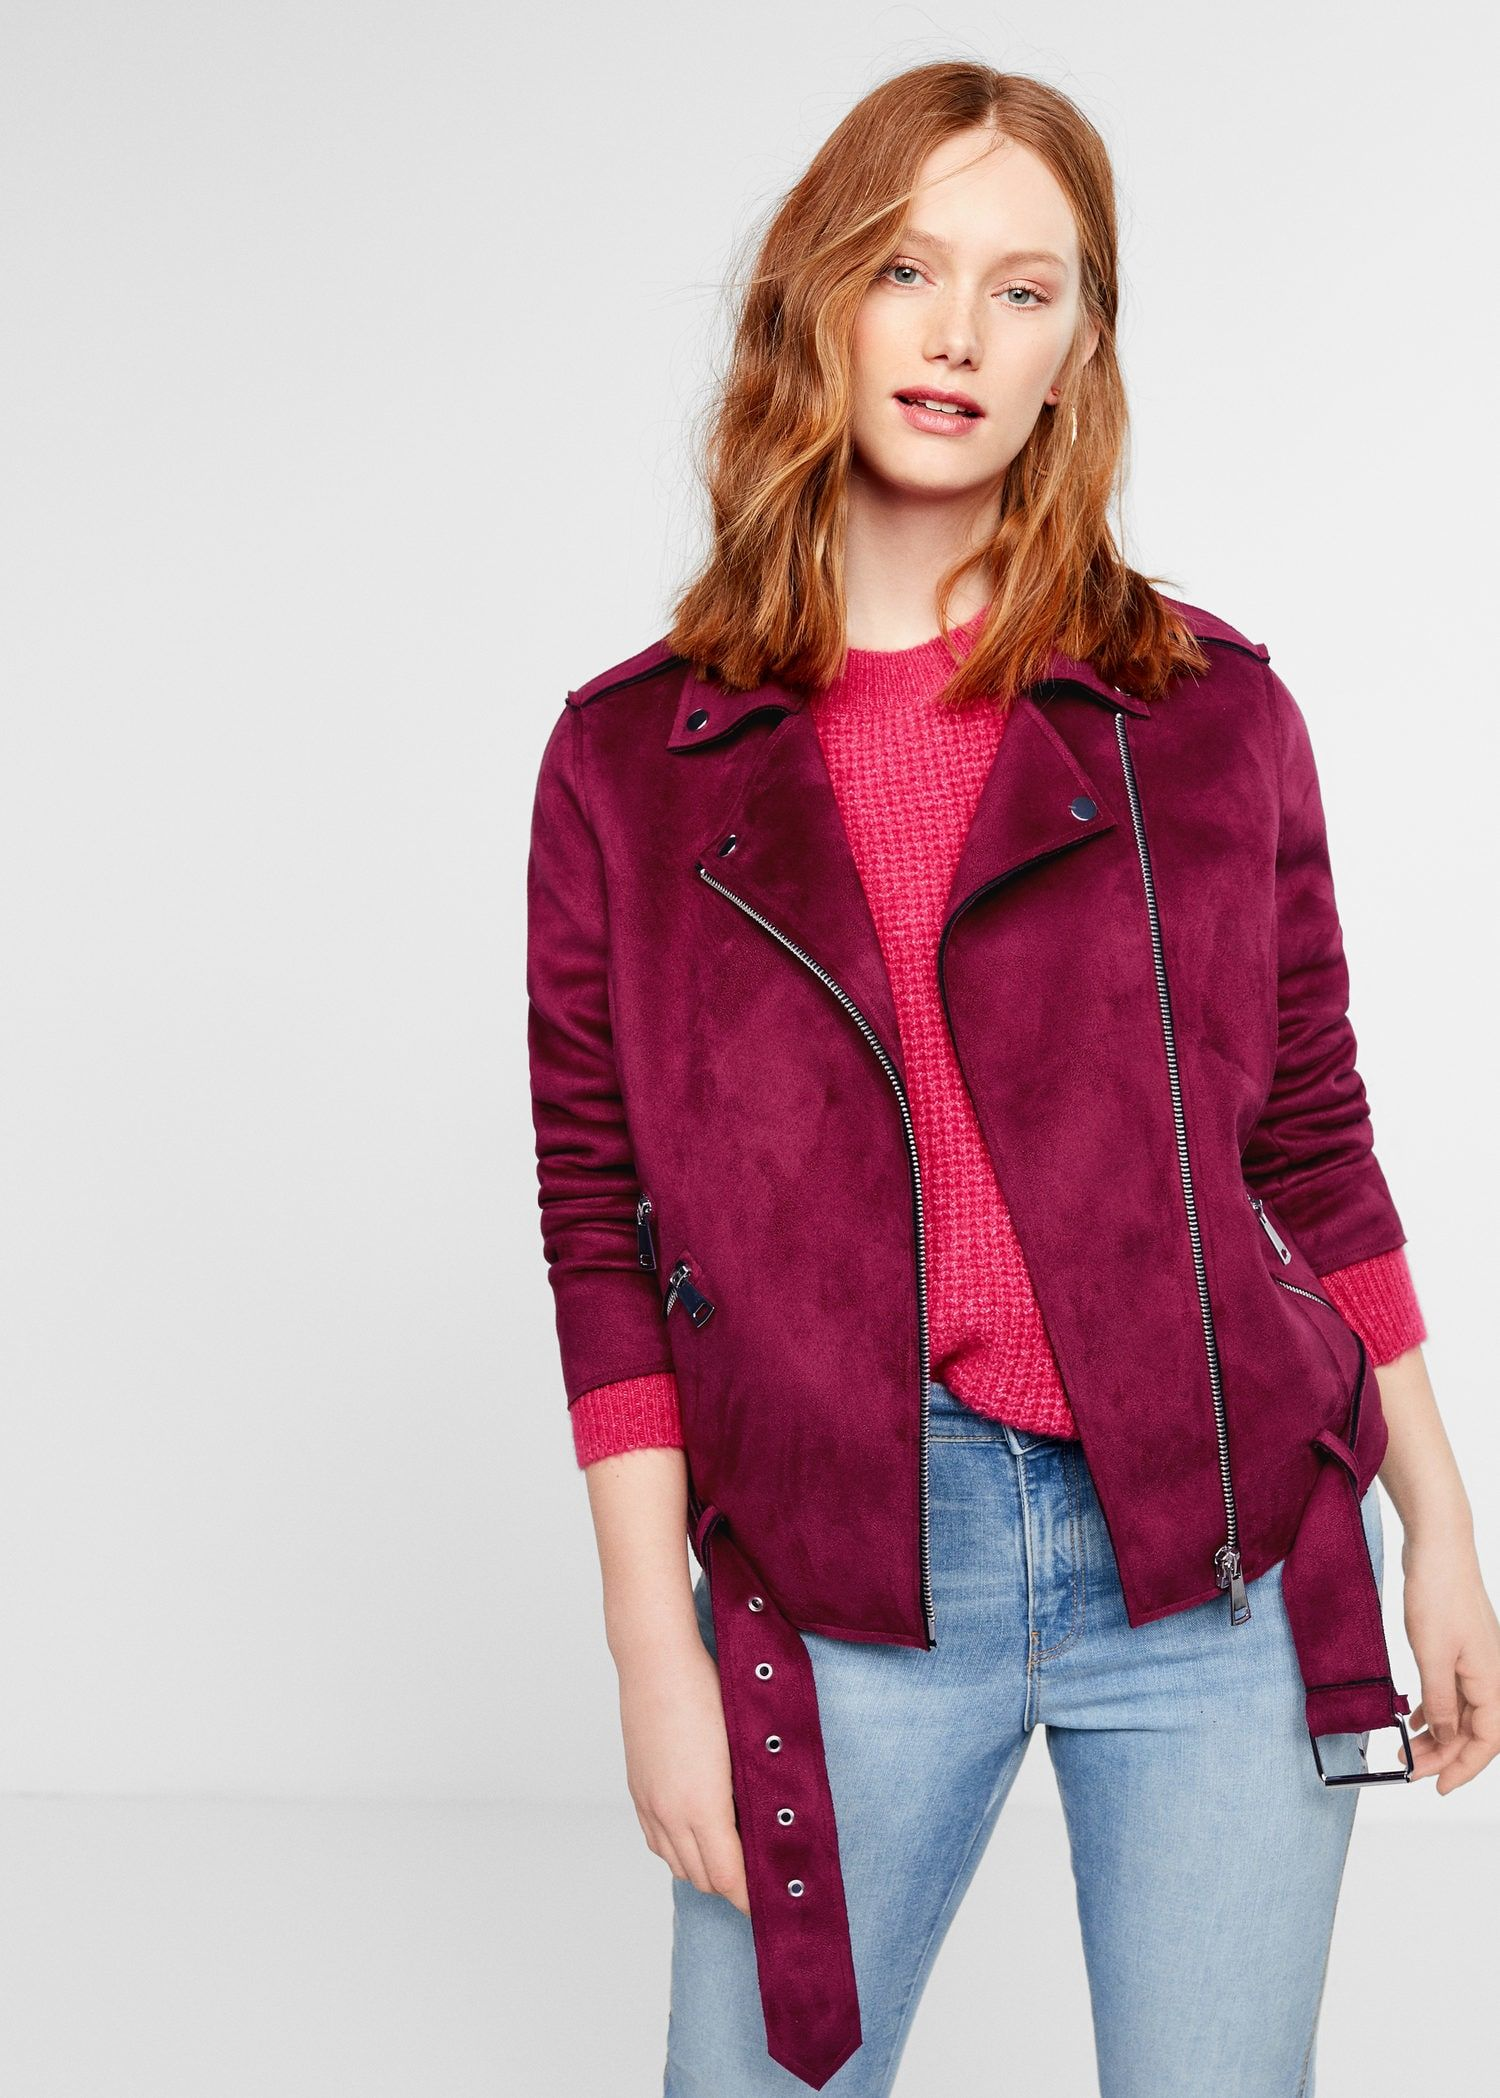 Suede effect jacket Plus sizes Faux leather jackets